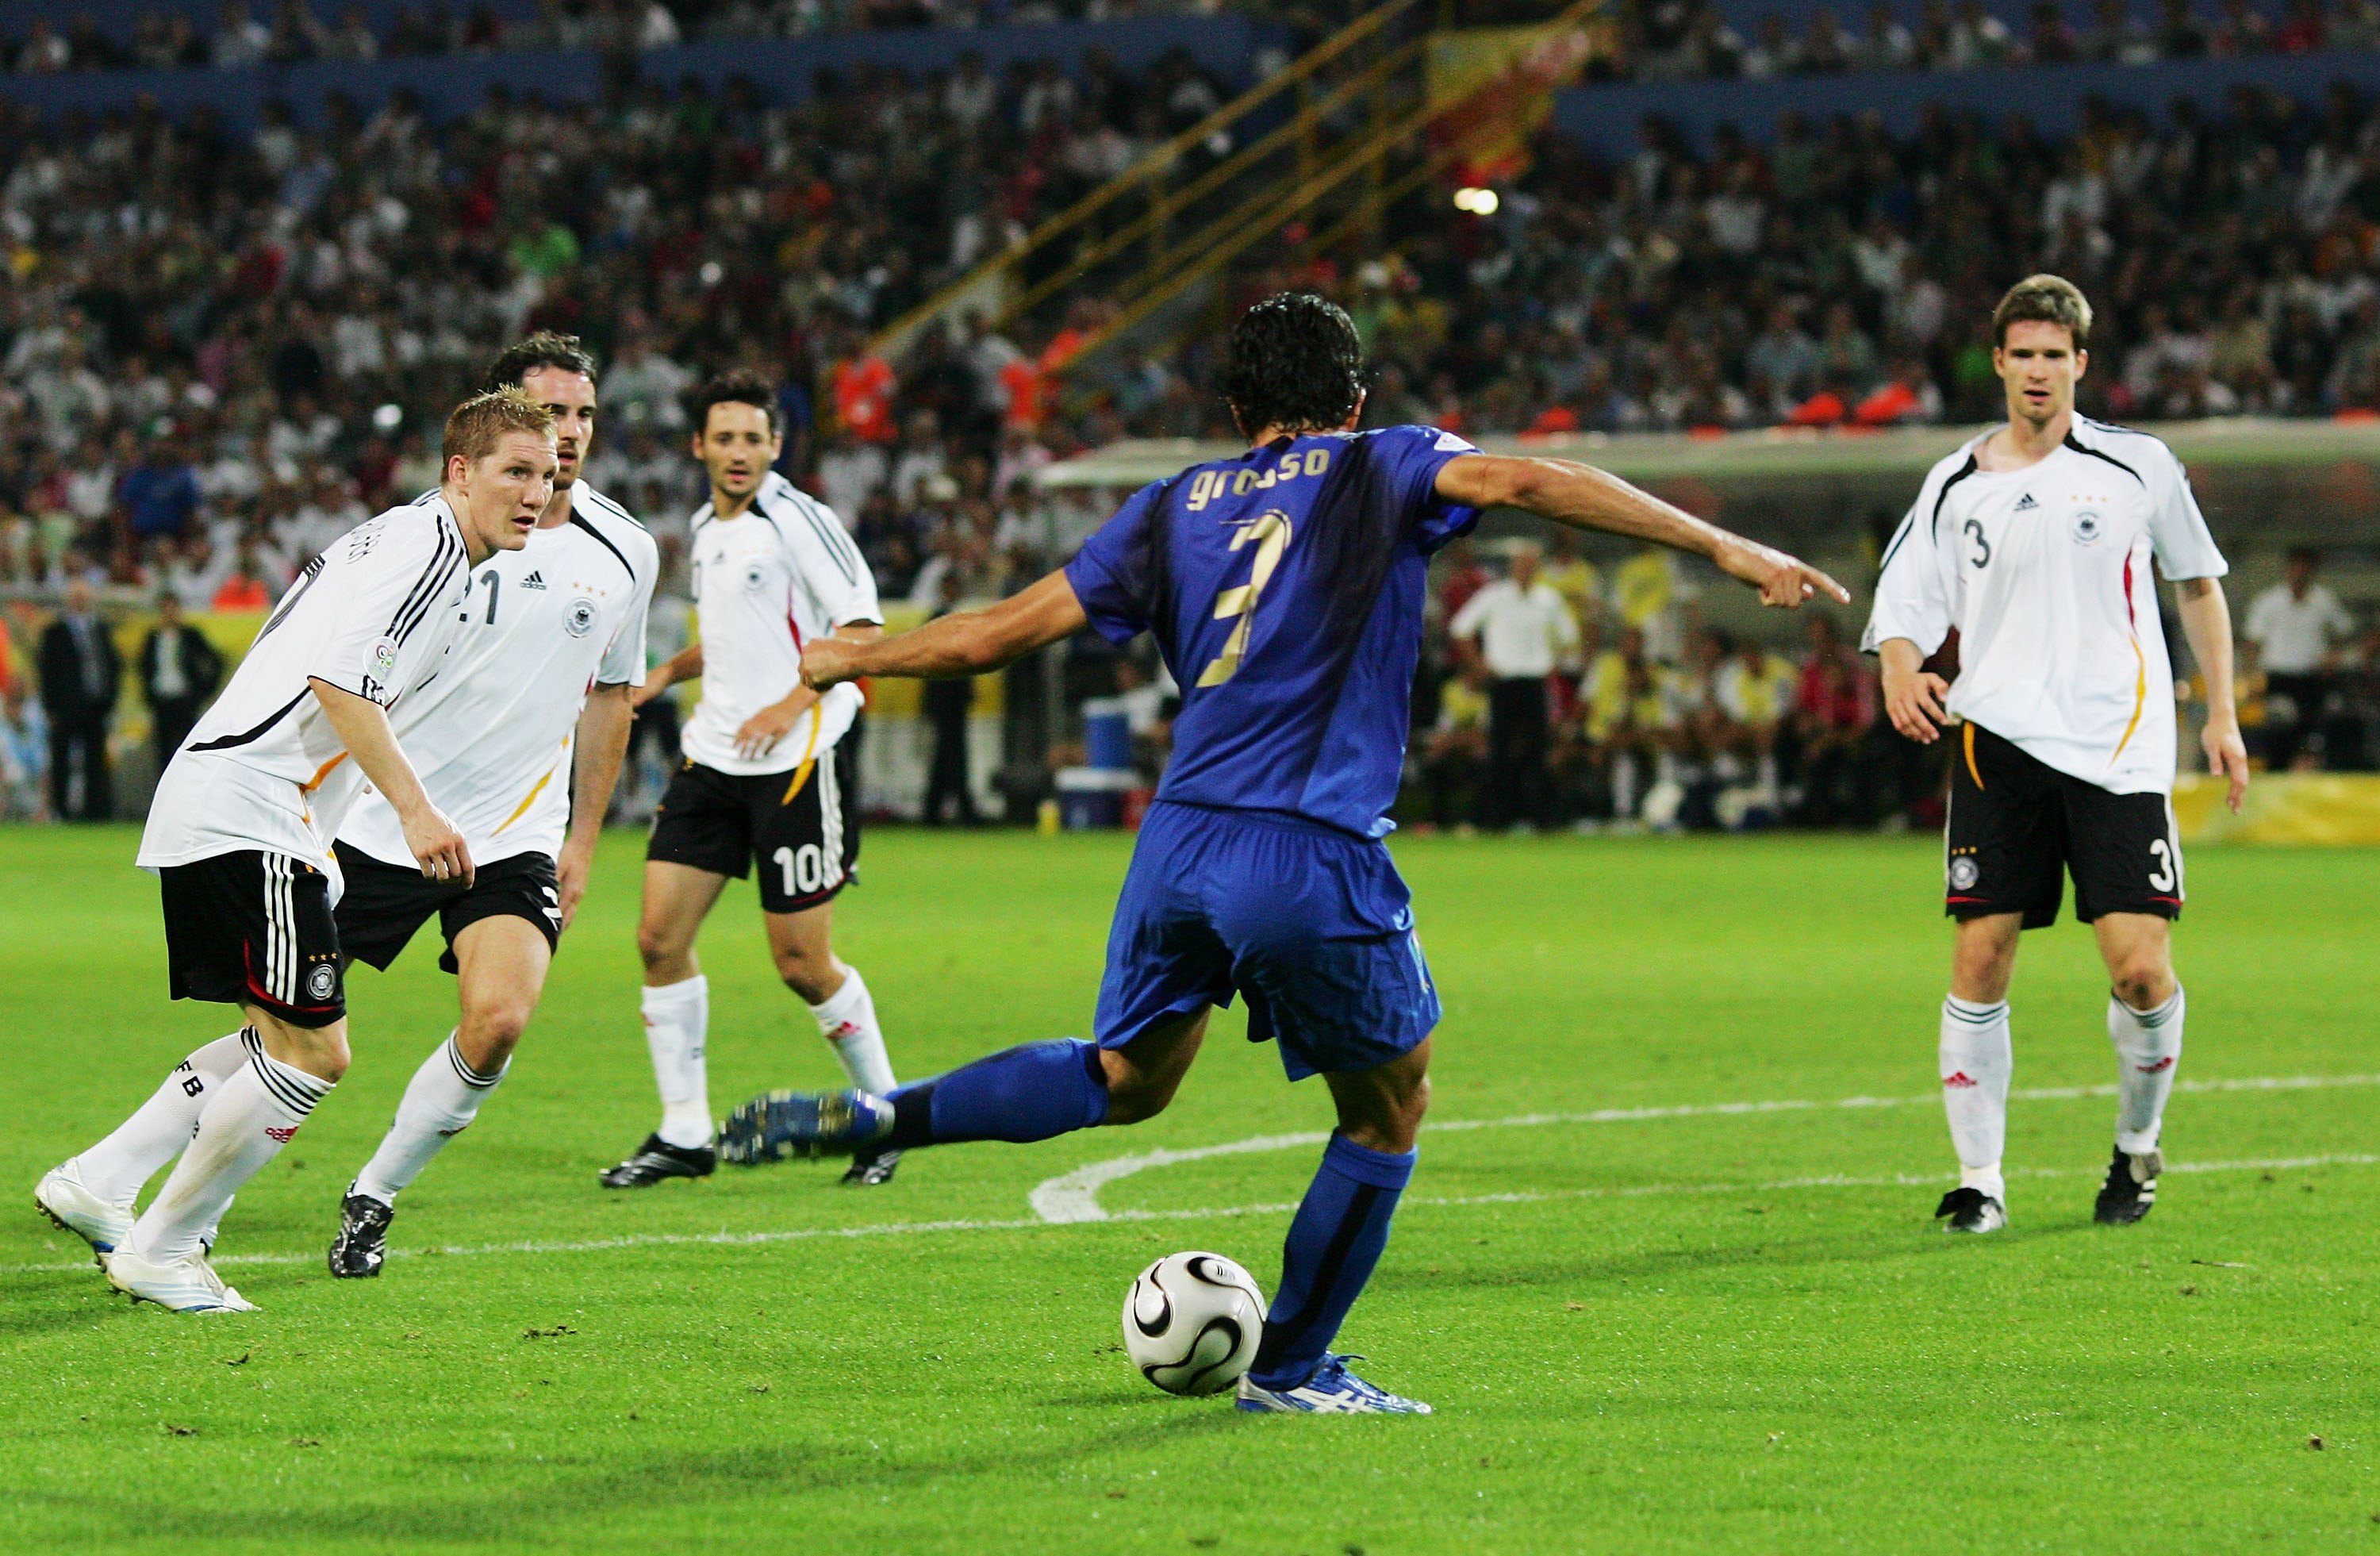 DORTMUND, GERMANY - JULY 04: Fabio Grosso of Italy scores his team's first goal in extra time during the FIFA World Cup Germany 2006 Semi-final match between Germany and Italy played at the Stadium Dortmund on July 04, 2006 in Dortmund, Germany. (Photo by Alex Livesey/Getty Images)